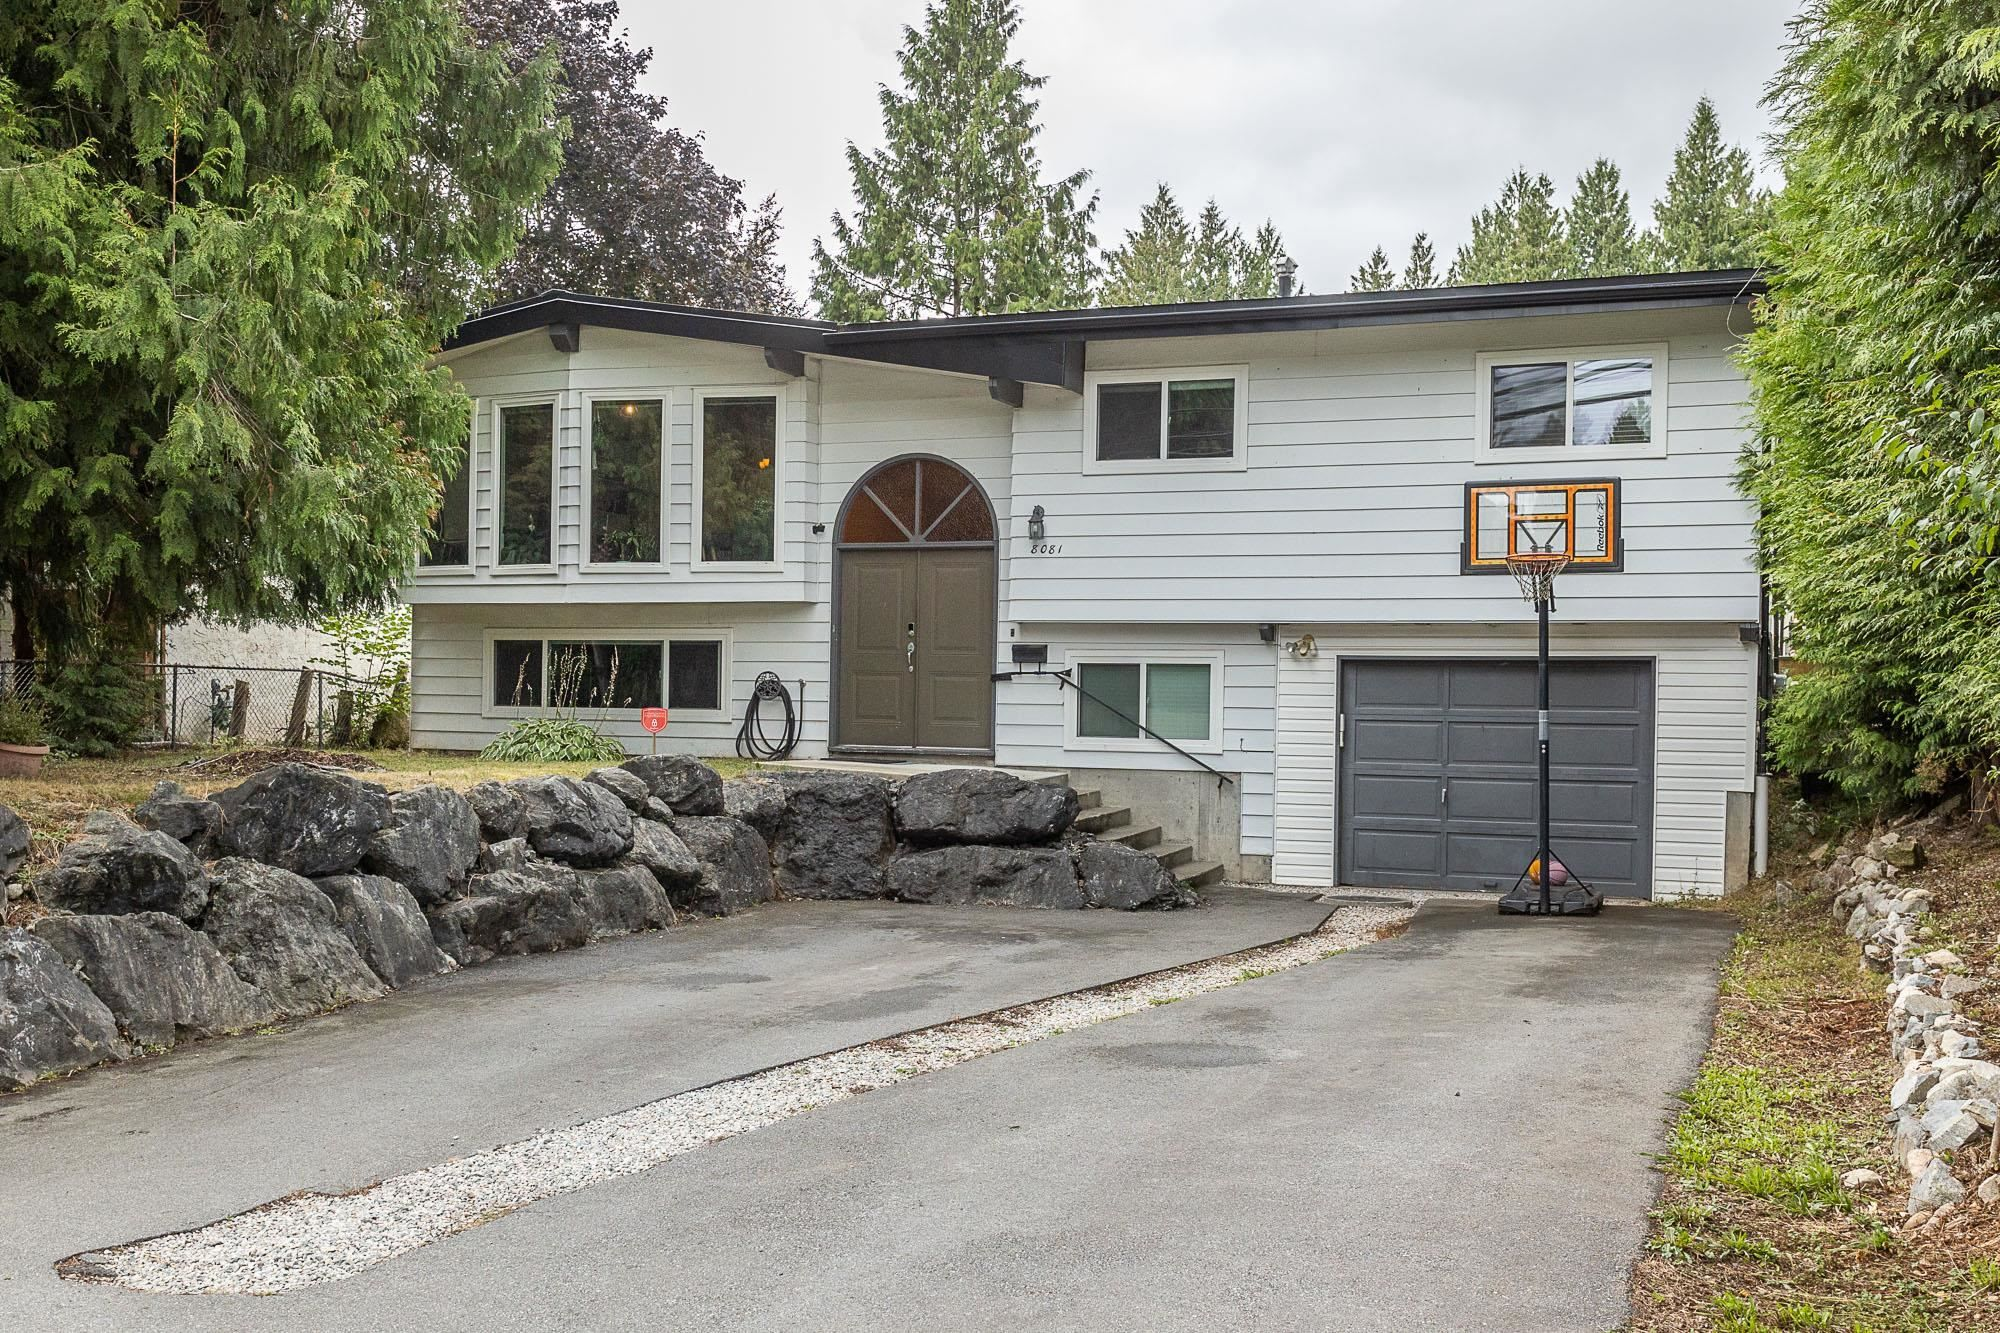 Main Photo: 8081 CADE BARR Street in Mission: Mission BC House for sale : MLS®# R2615539